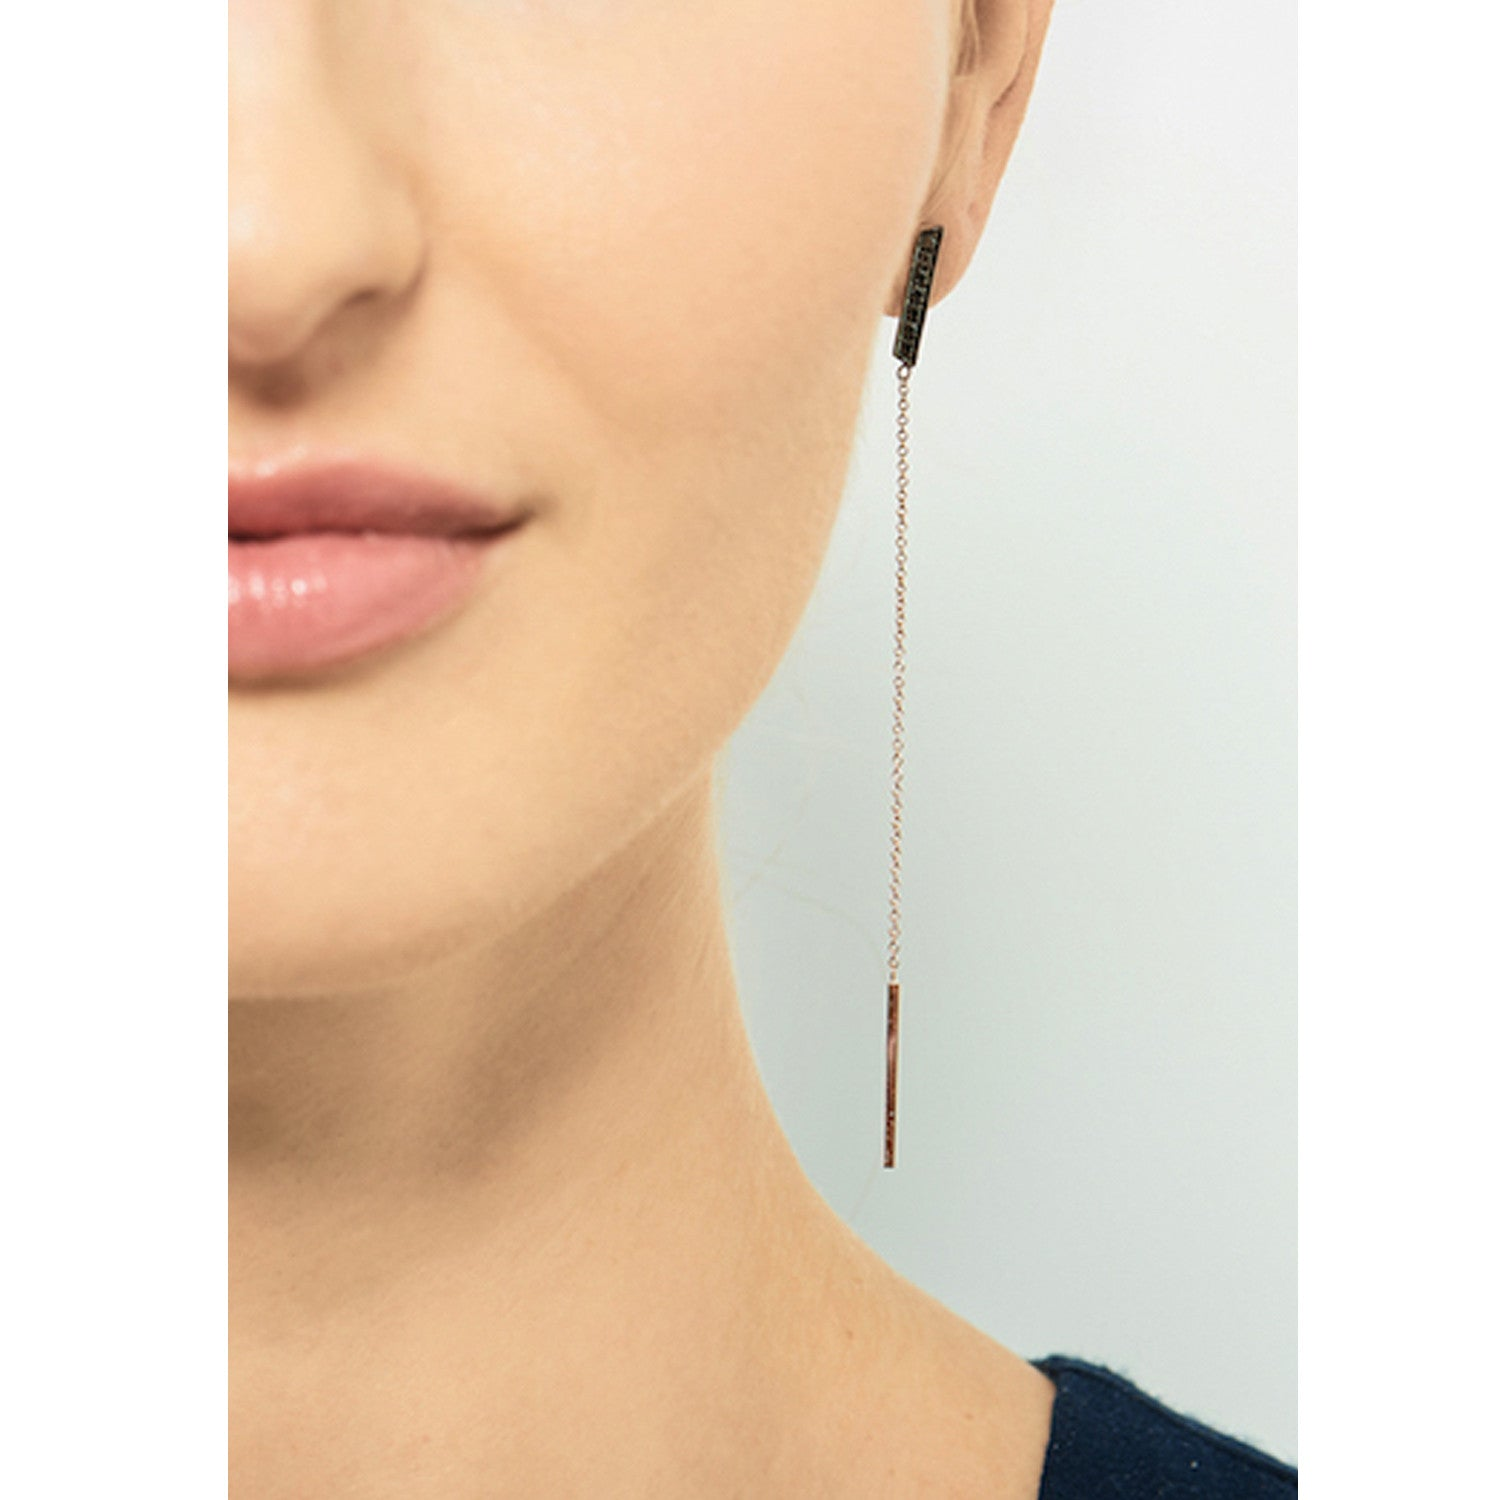 Selin Kent 14K Marlene Earrings with Black Diamonds - On Model